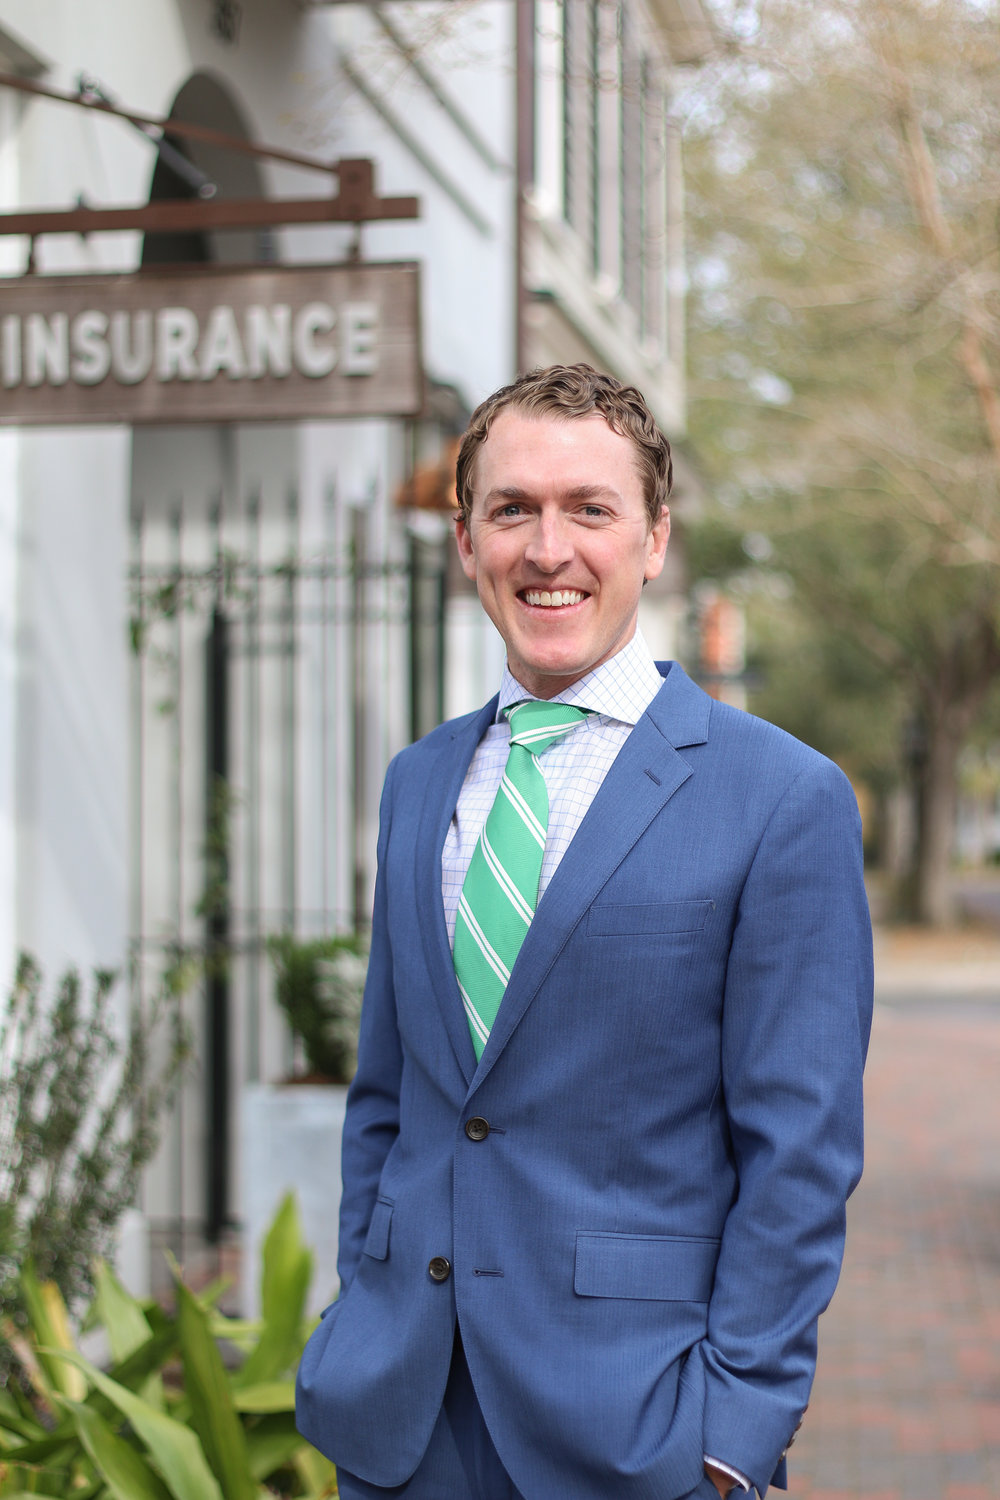 Aryn Linenger, AAI, CIC - Accredited Advisor of Insurance (AAI)Certified Insurance Counselor (CIC)